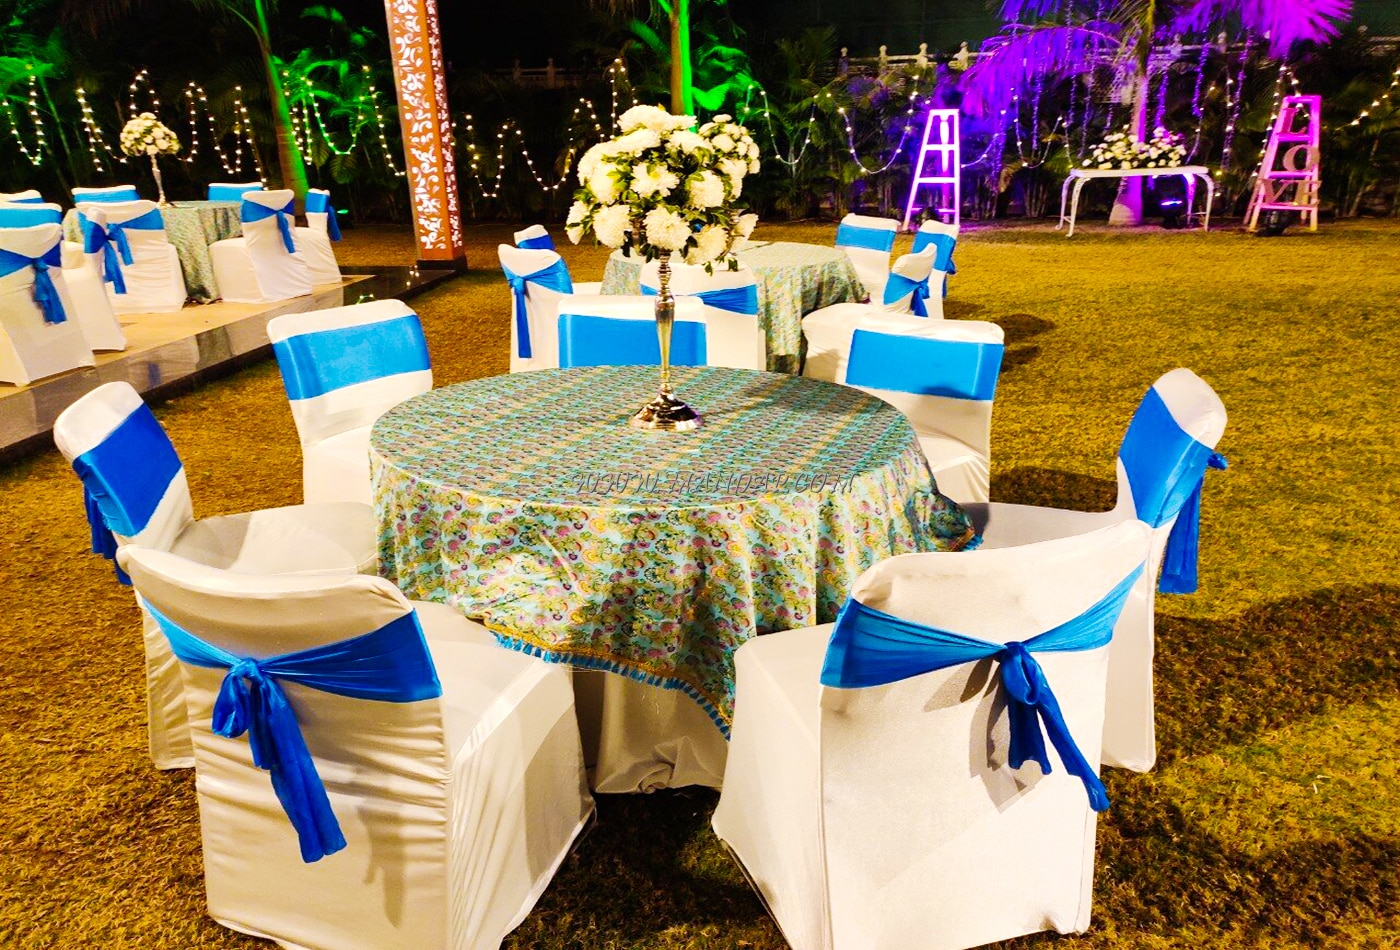 Find More Wedding Venues in Sohna